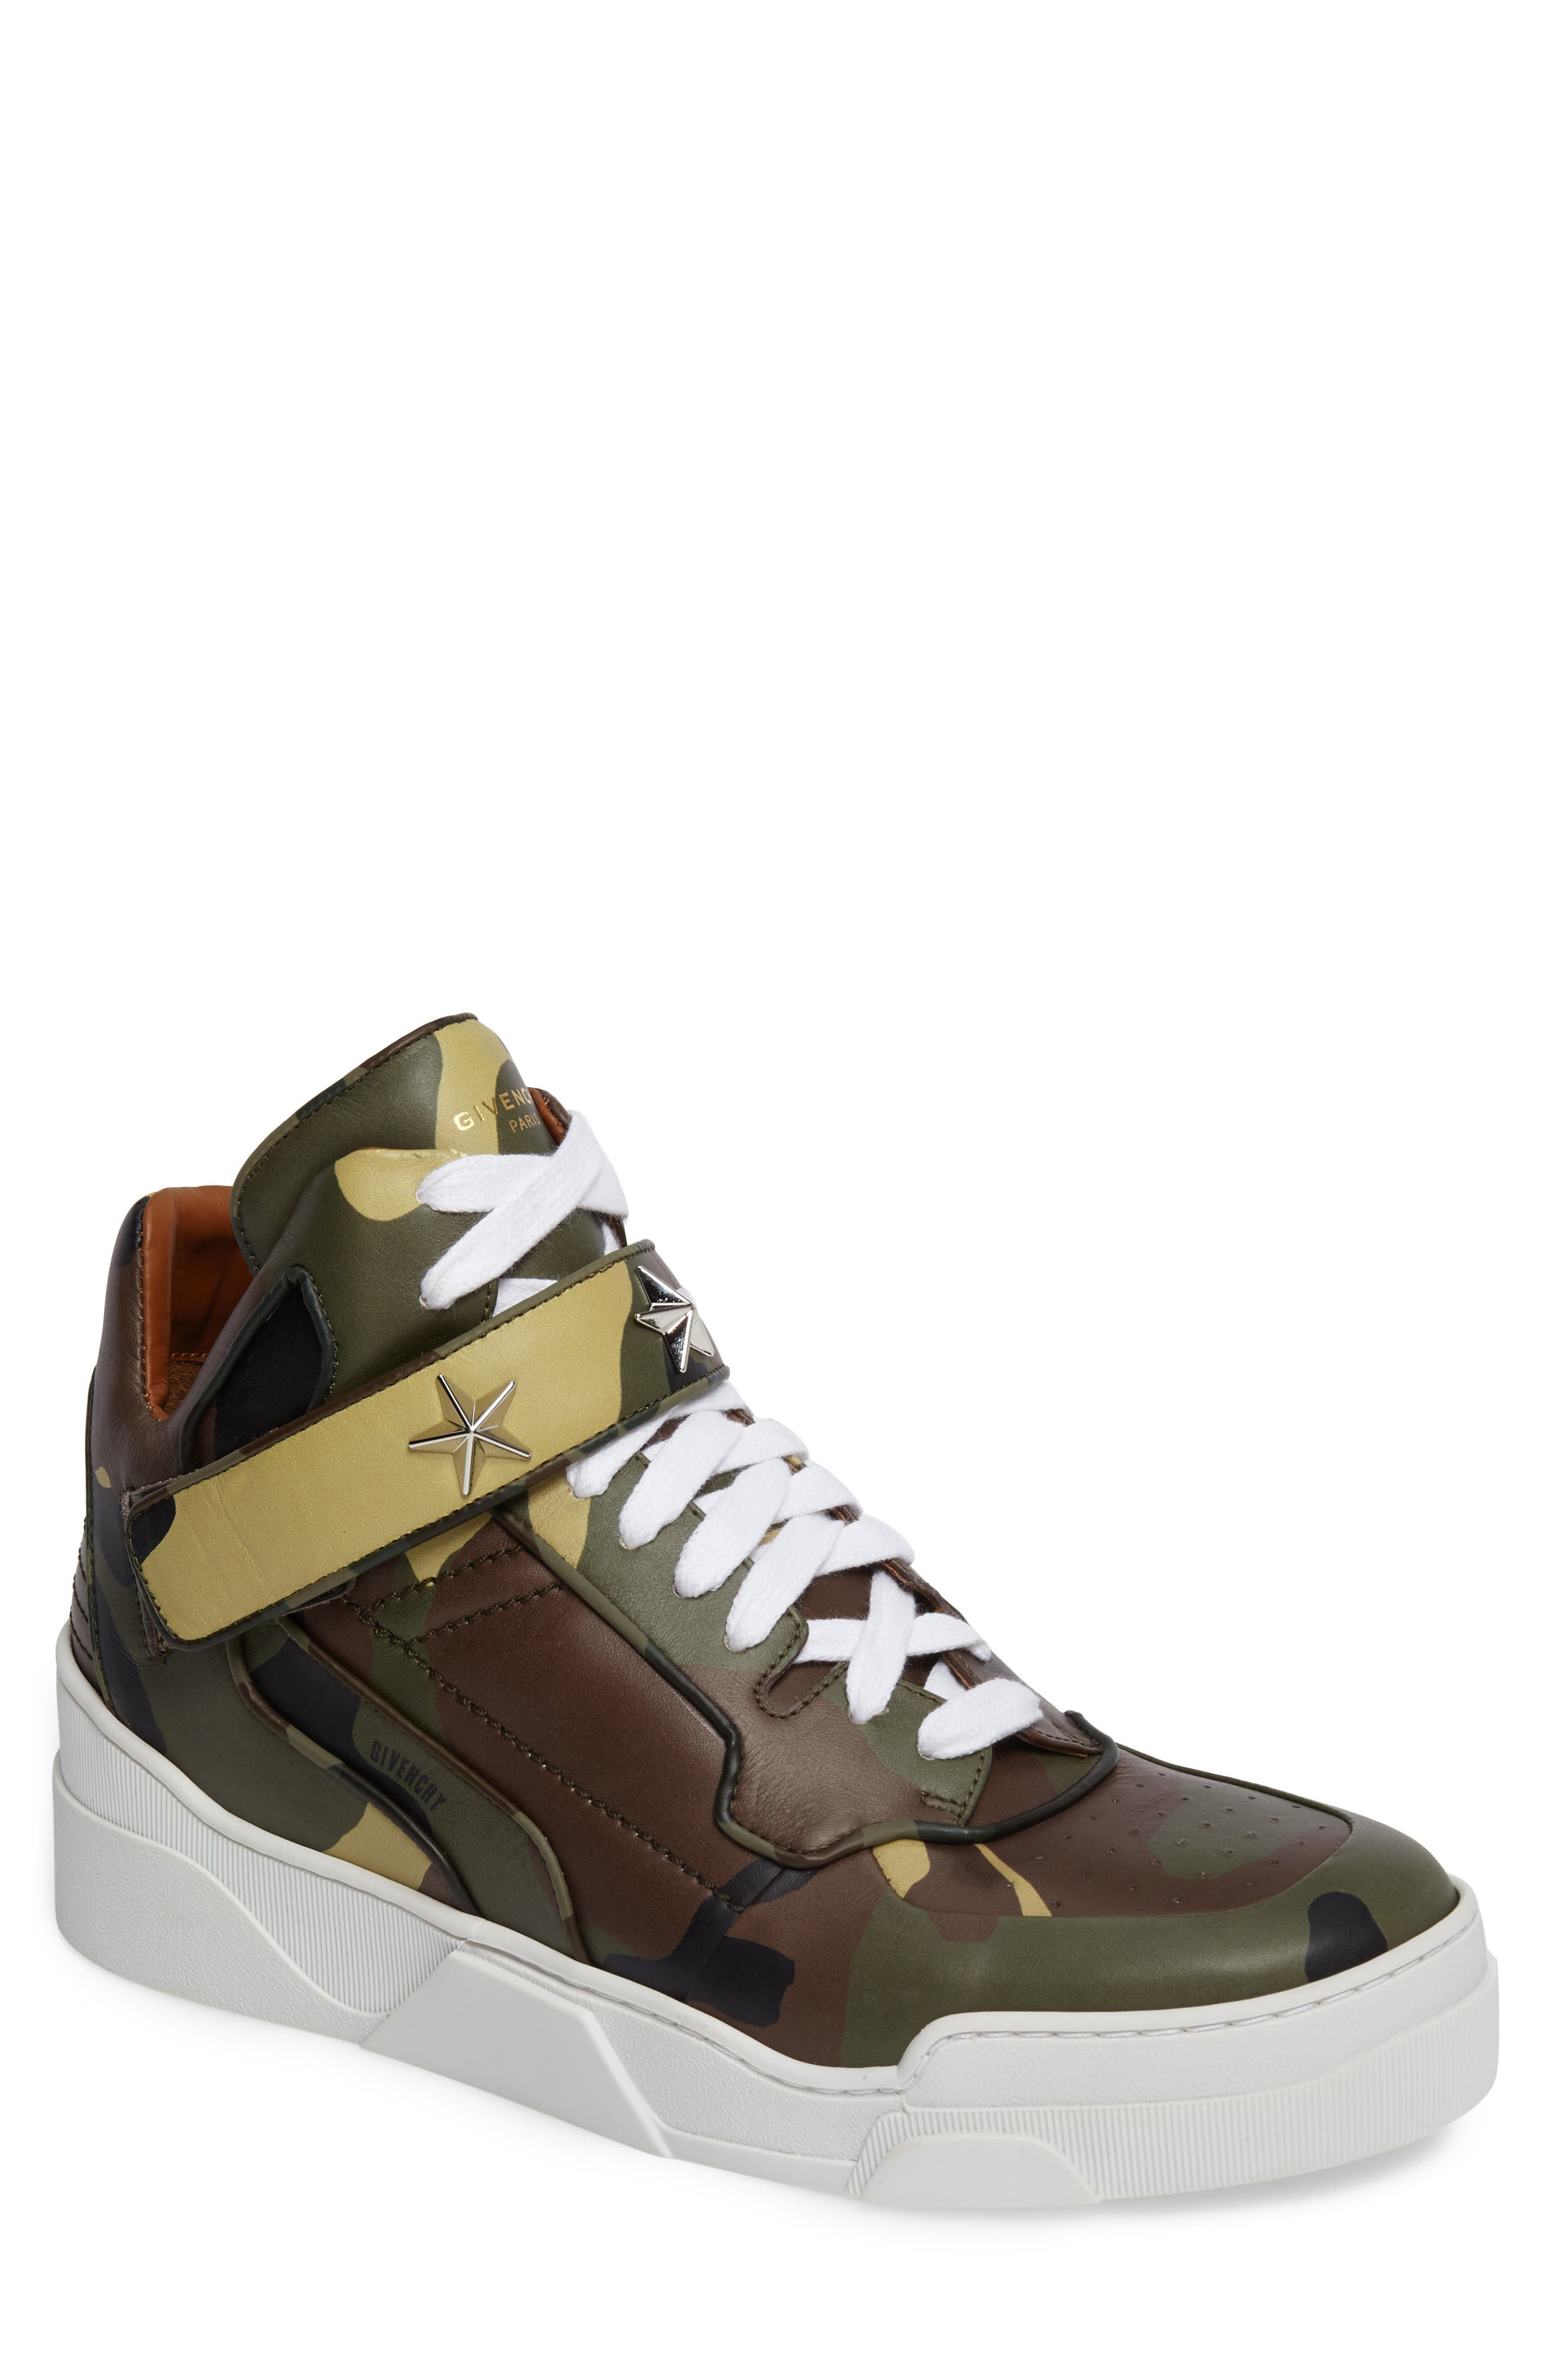 Main Image - Givenchy 'Tyson' High Top Sneaker (Men) (Nordstrom Exclusive. '